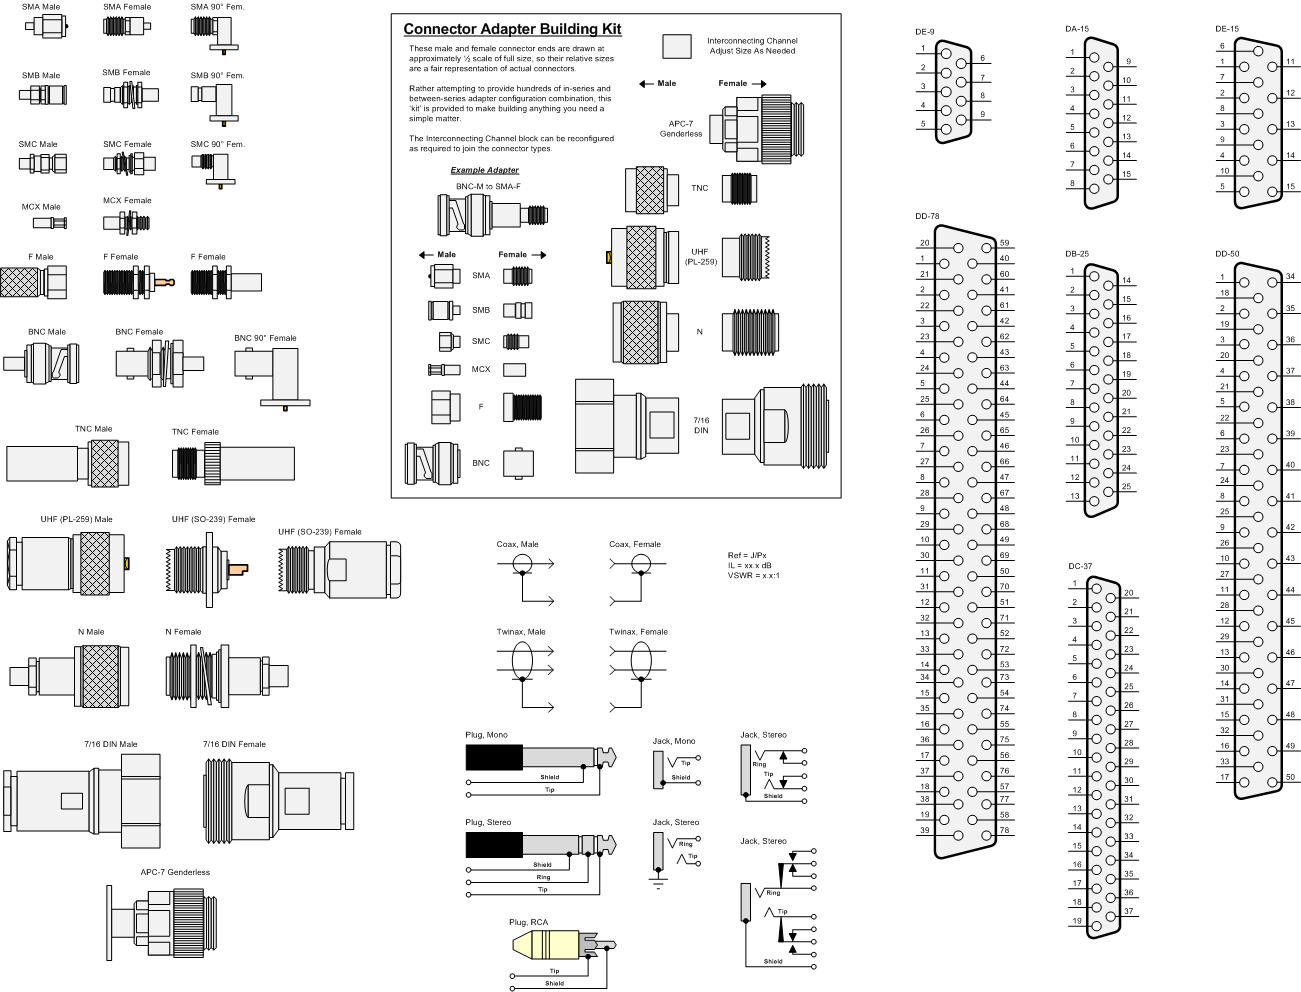 visio 2010 piping and instrumentation diagram template